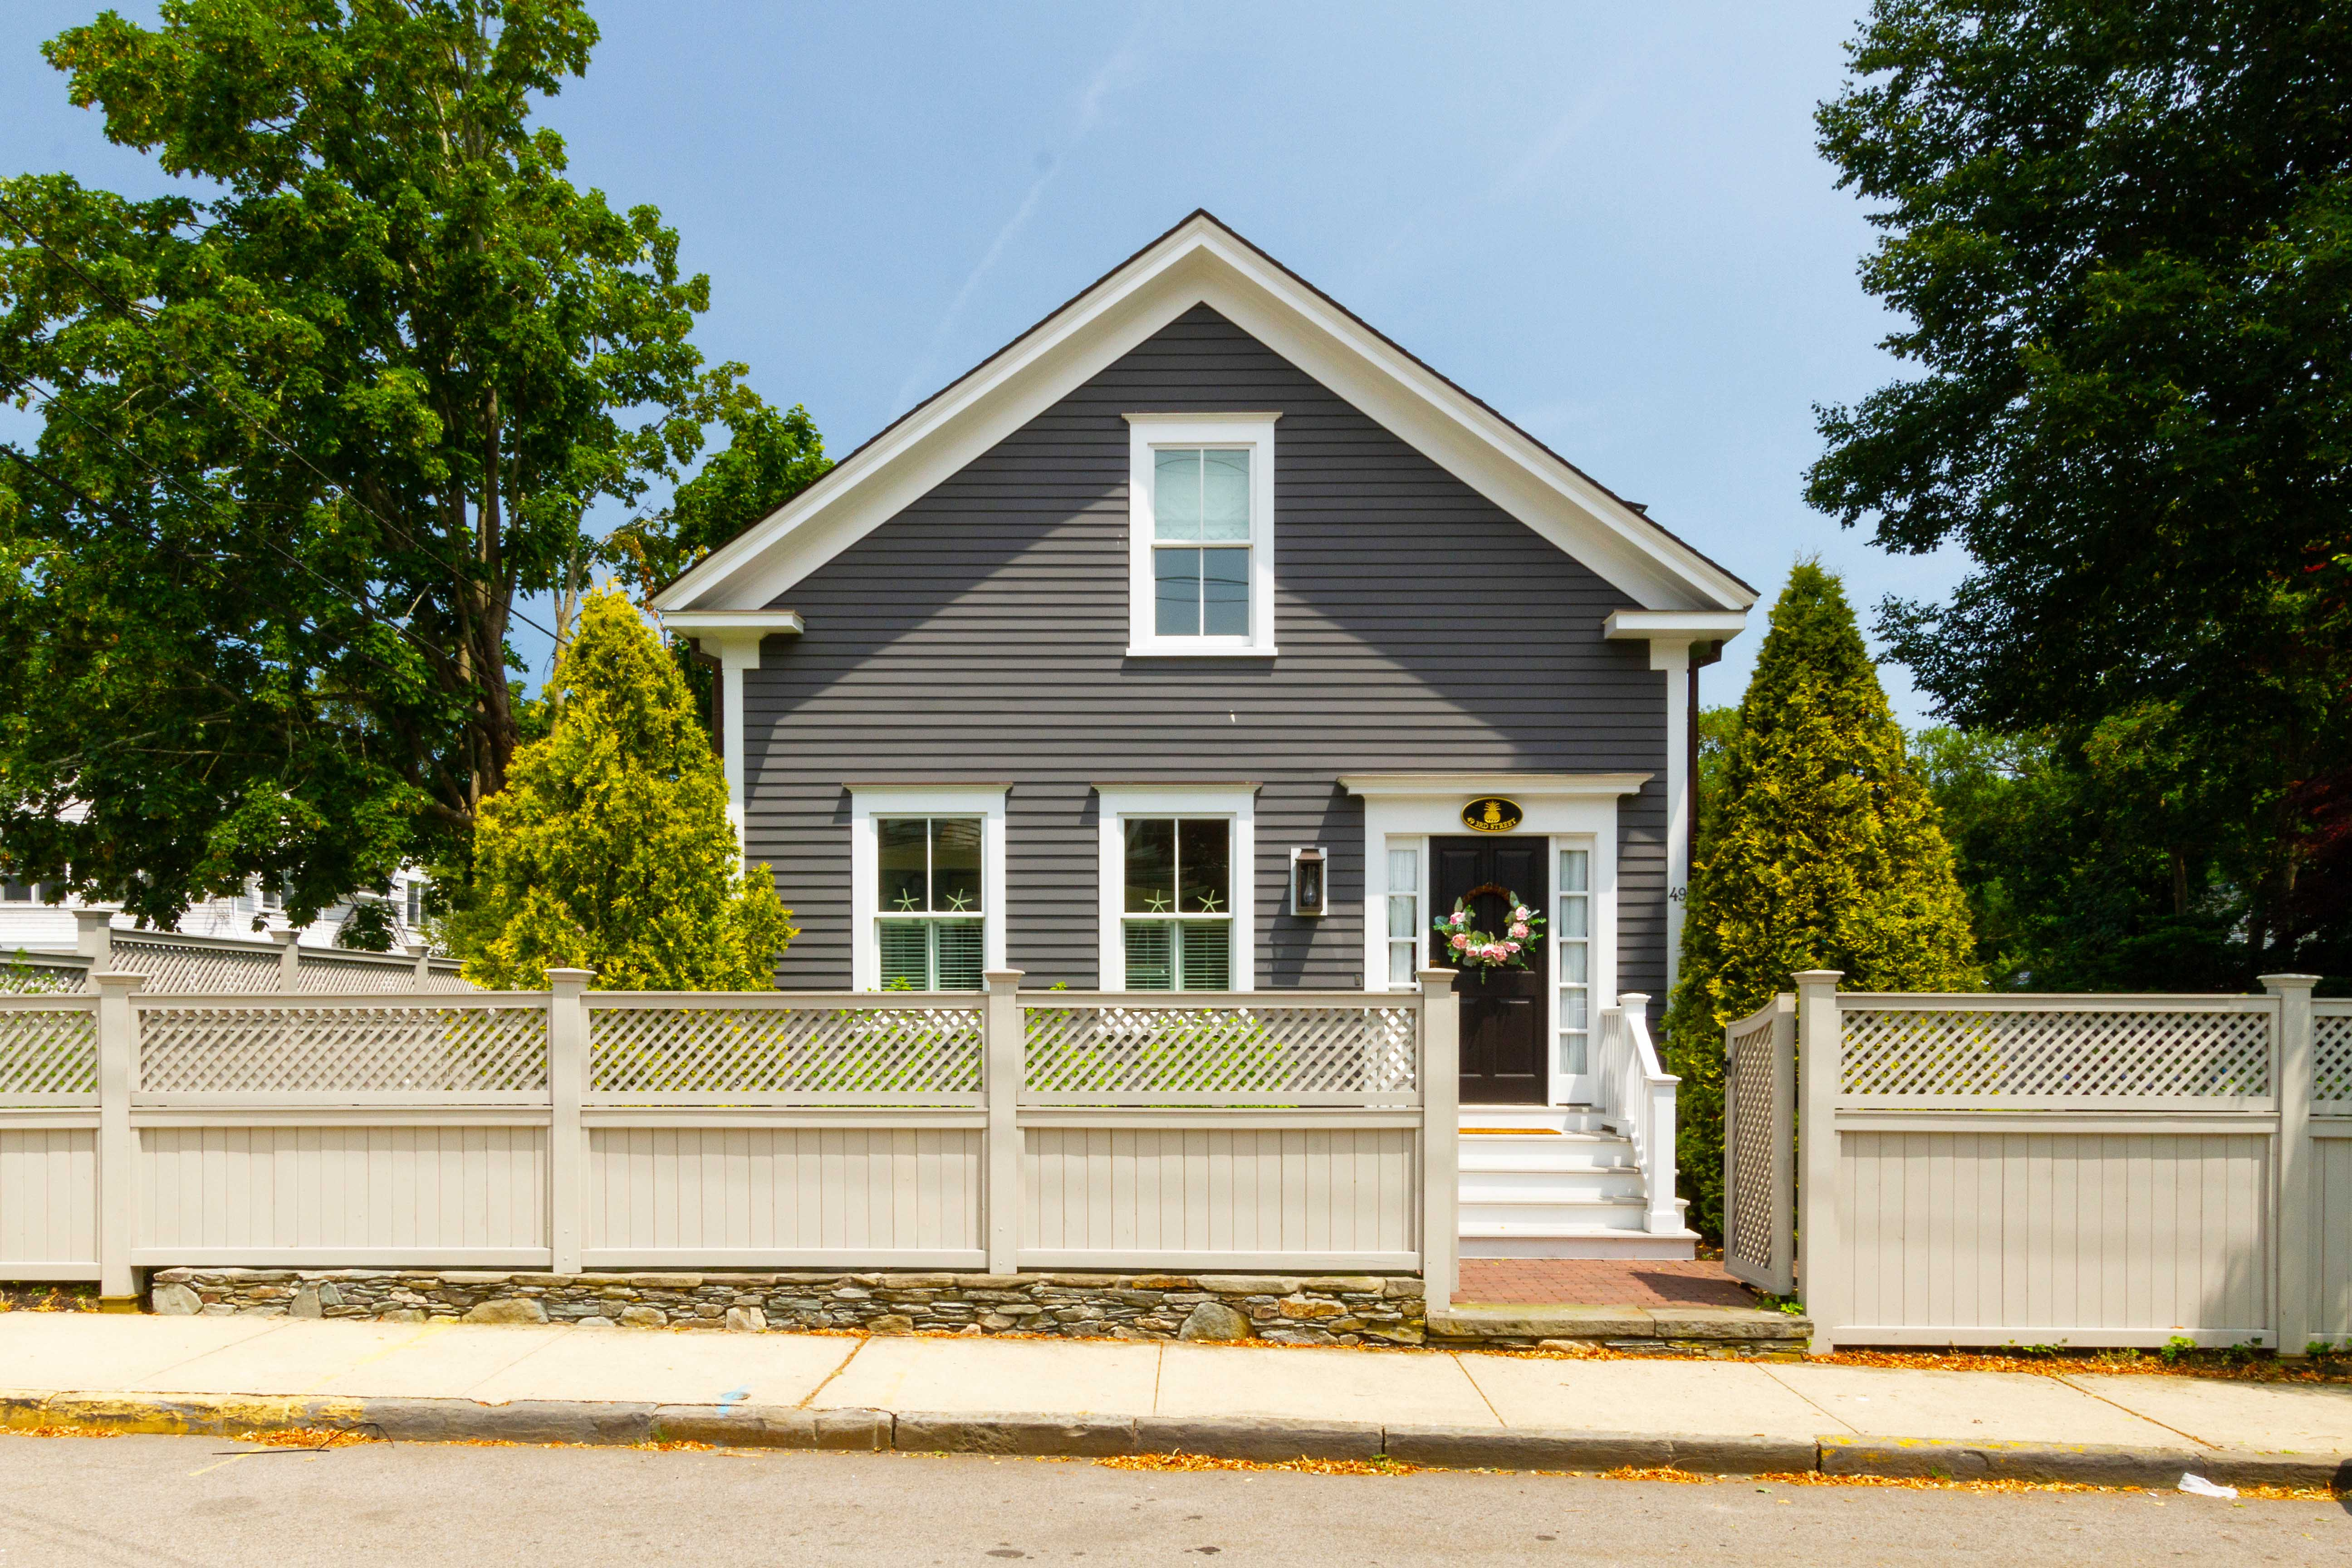 ERIC KIRTON, NEWPORT COUNTY TOP PRODUCER, SELLS POINT COLONIAL FOR $1.237M